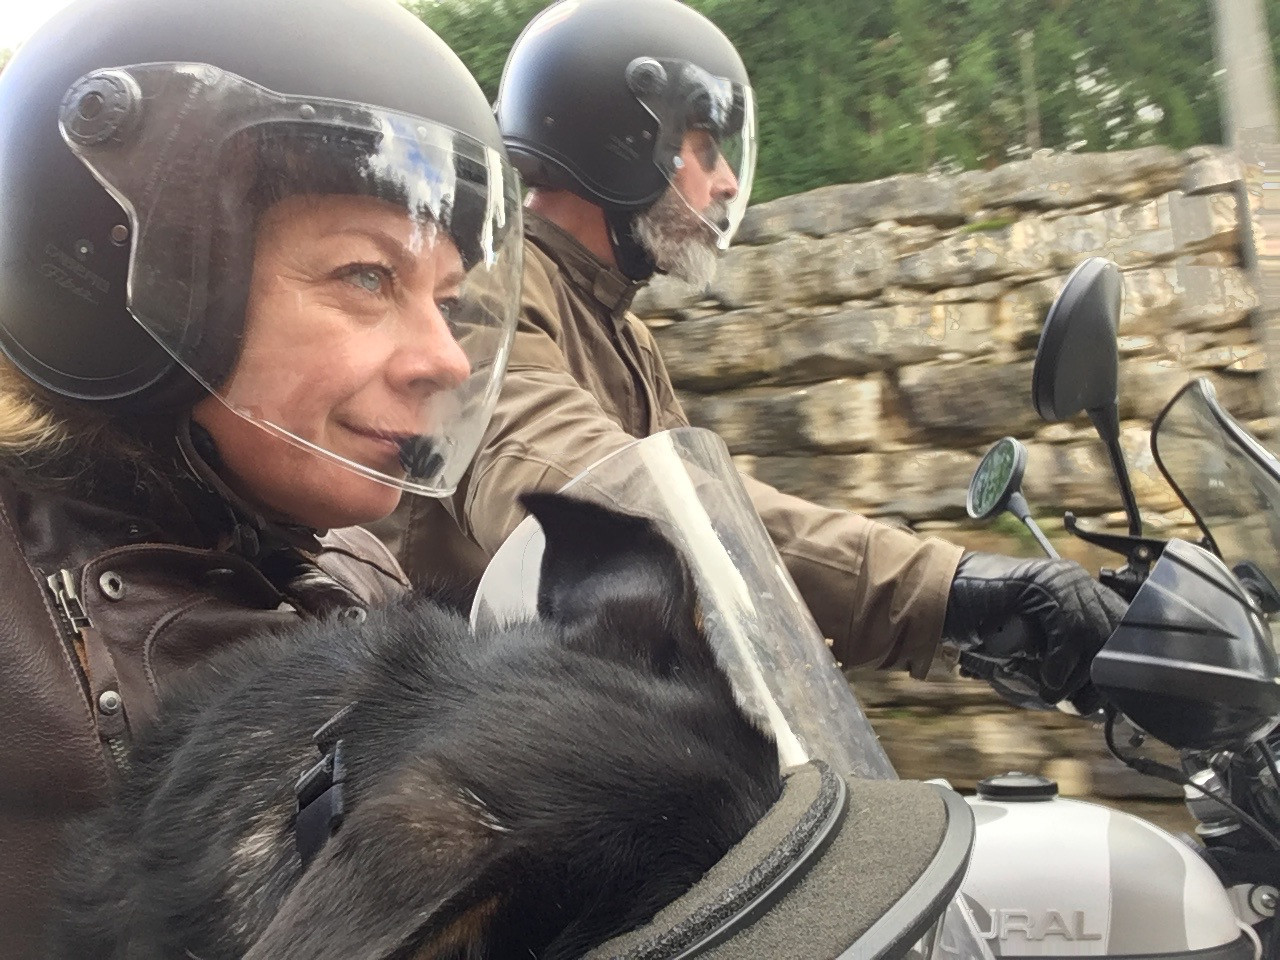 Exploring in a sidecar is social and satisfies our adventurous side. We all love it.